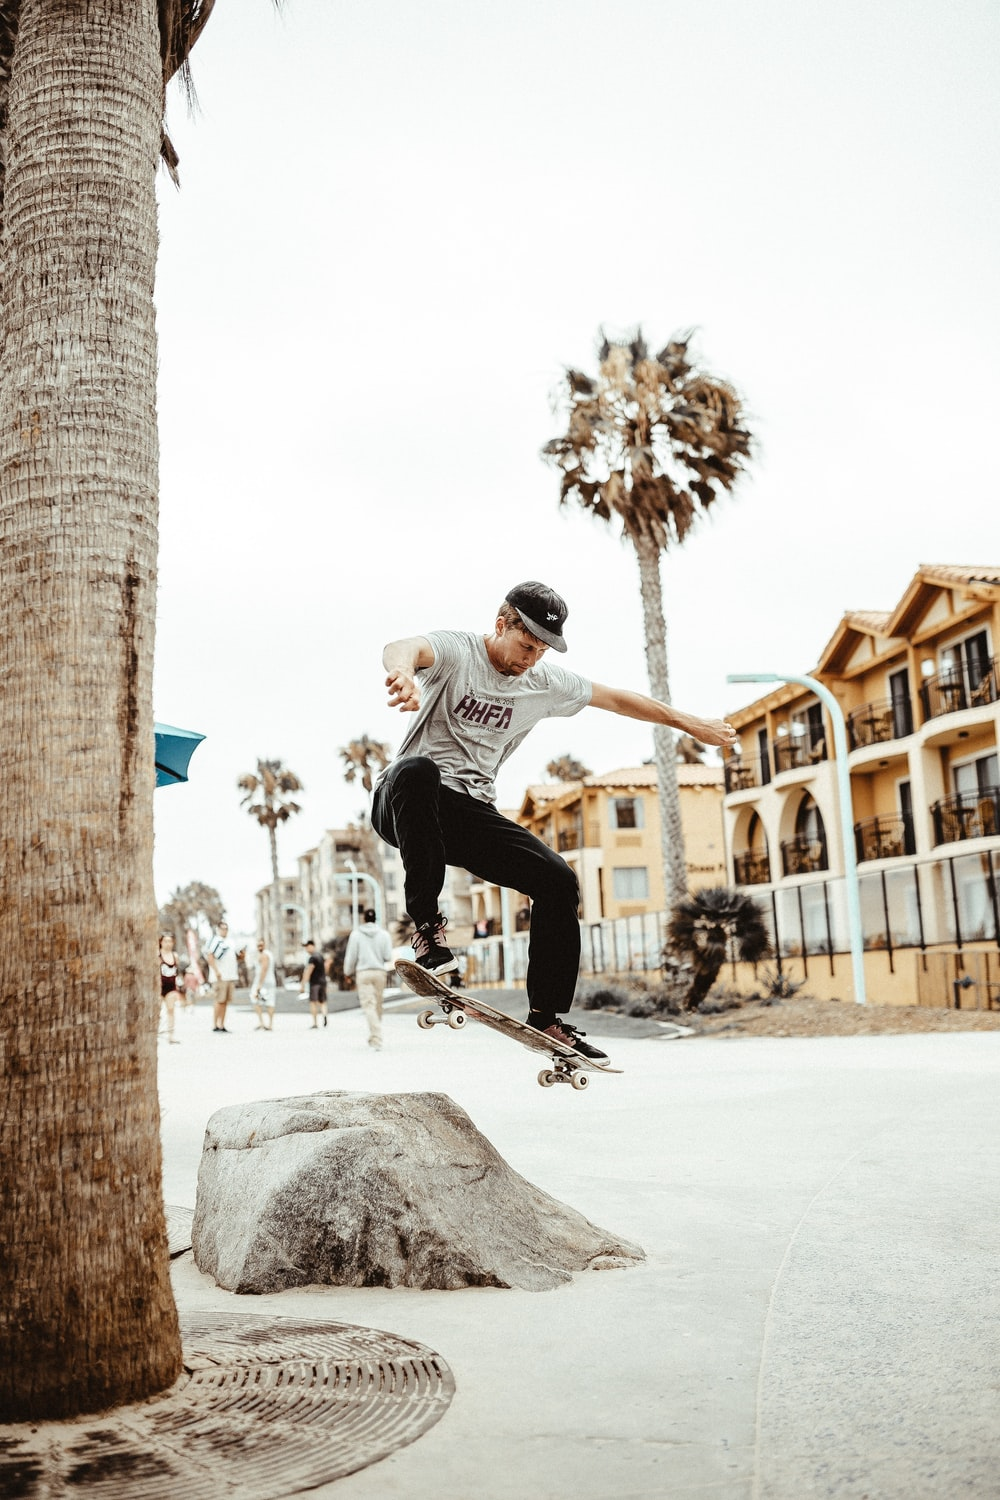 man playing skateboard tricks on the rock during daytime